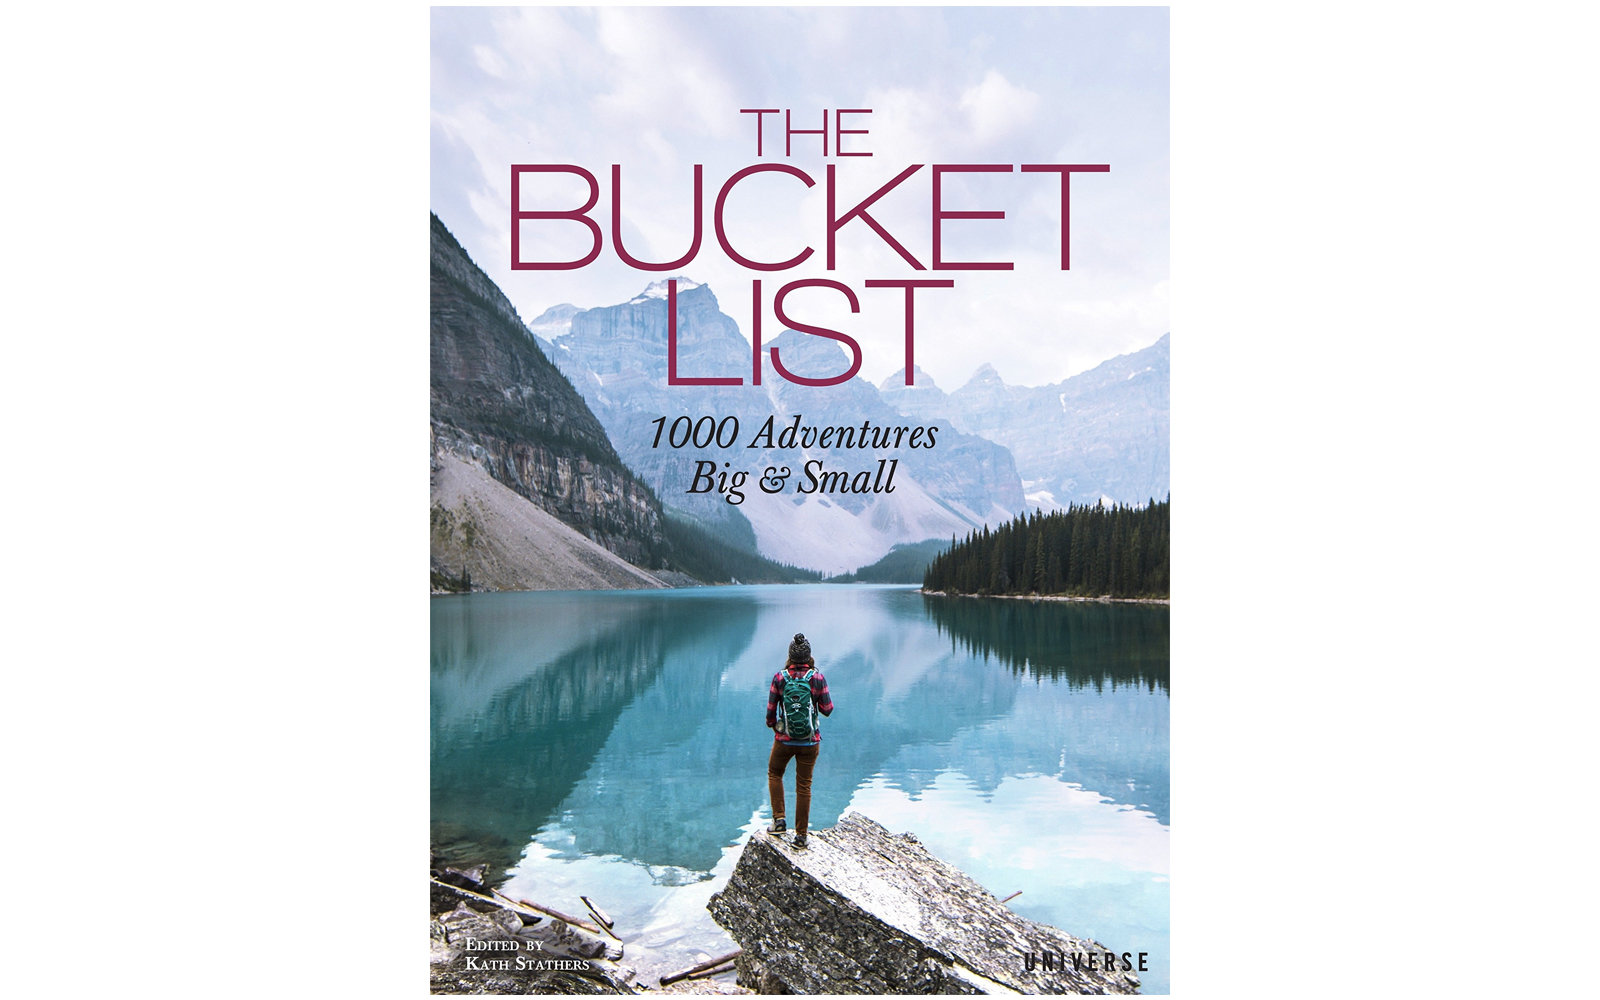 """The Bucket List: 1000 Adventures Big & Small"" by Kath Stathers"